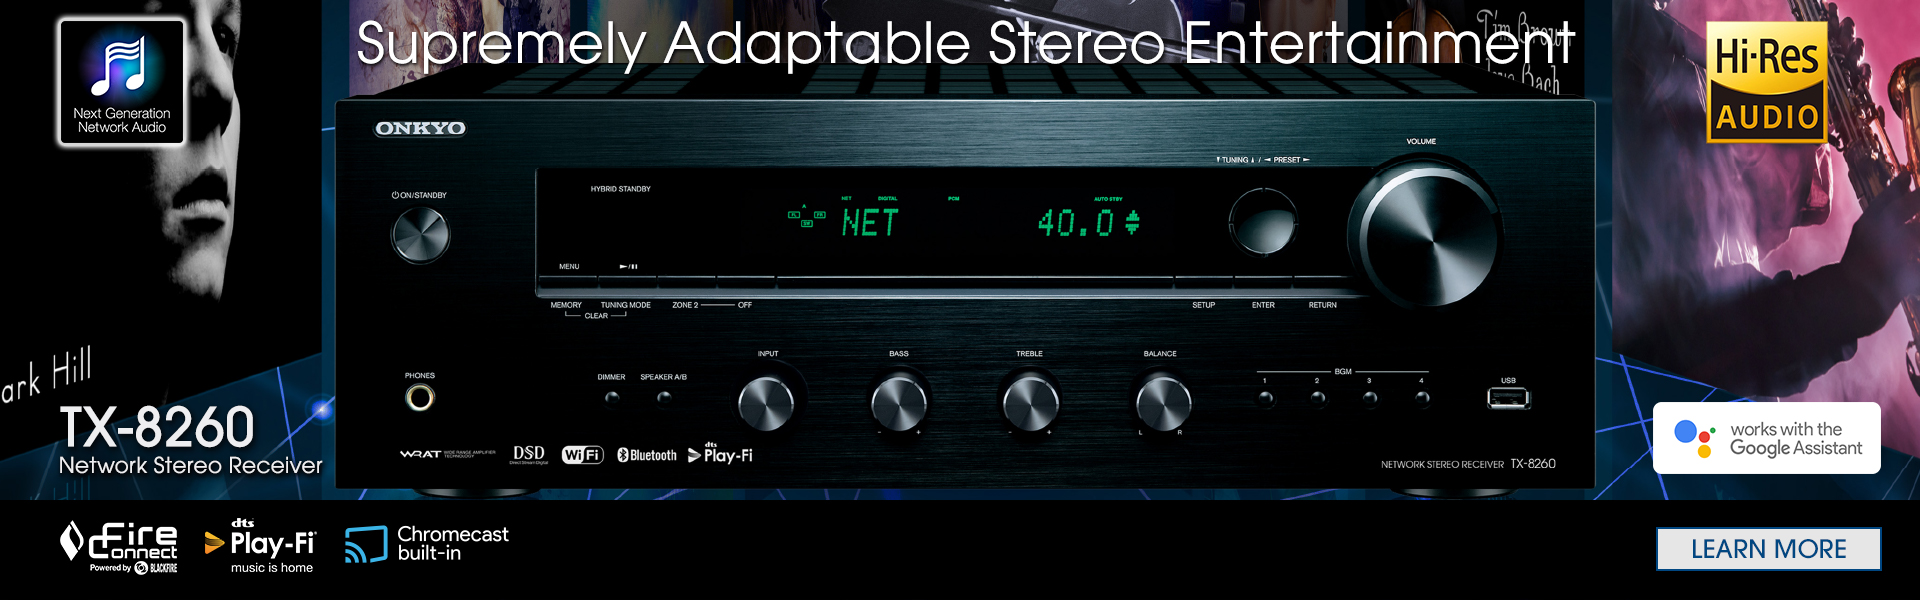 Onkyo TX-8260Network Stereo Receiver with Built-In Wi-Fi & Bluetooth